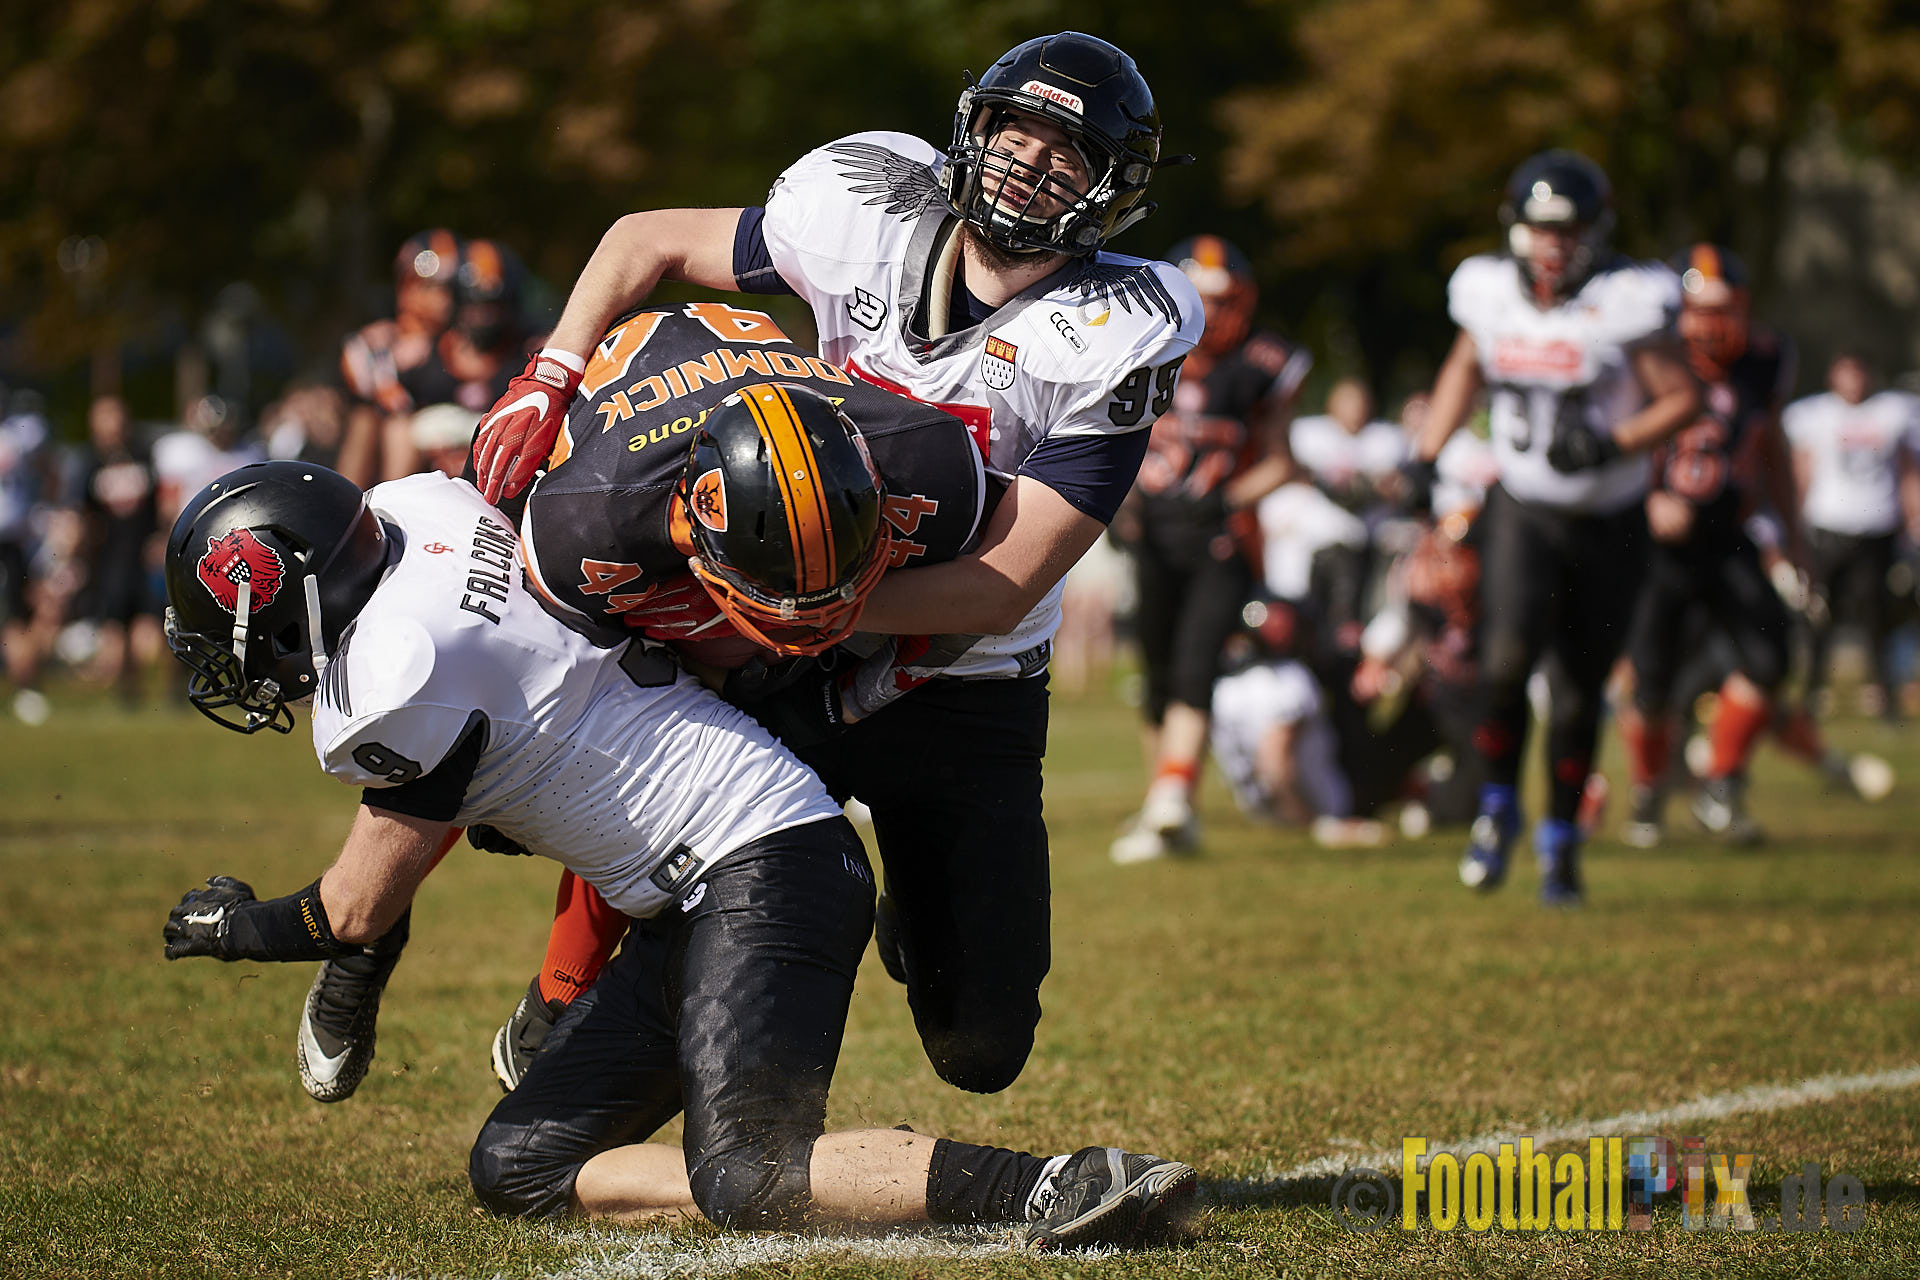 15.09.2019 LL NRW: Cologne Falcons Prospects vs. Cologne Ronin (28:2)